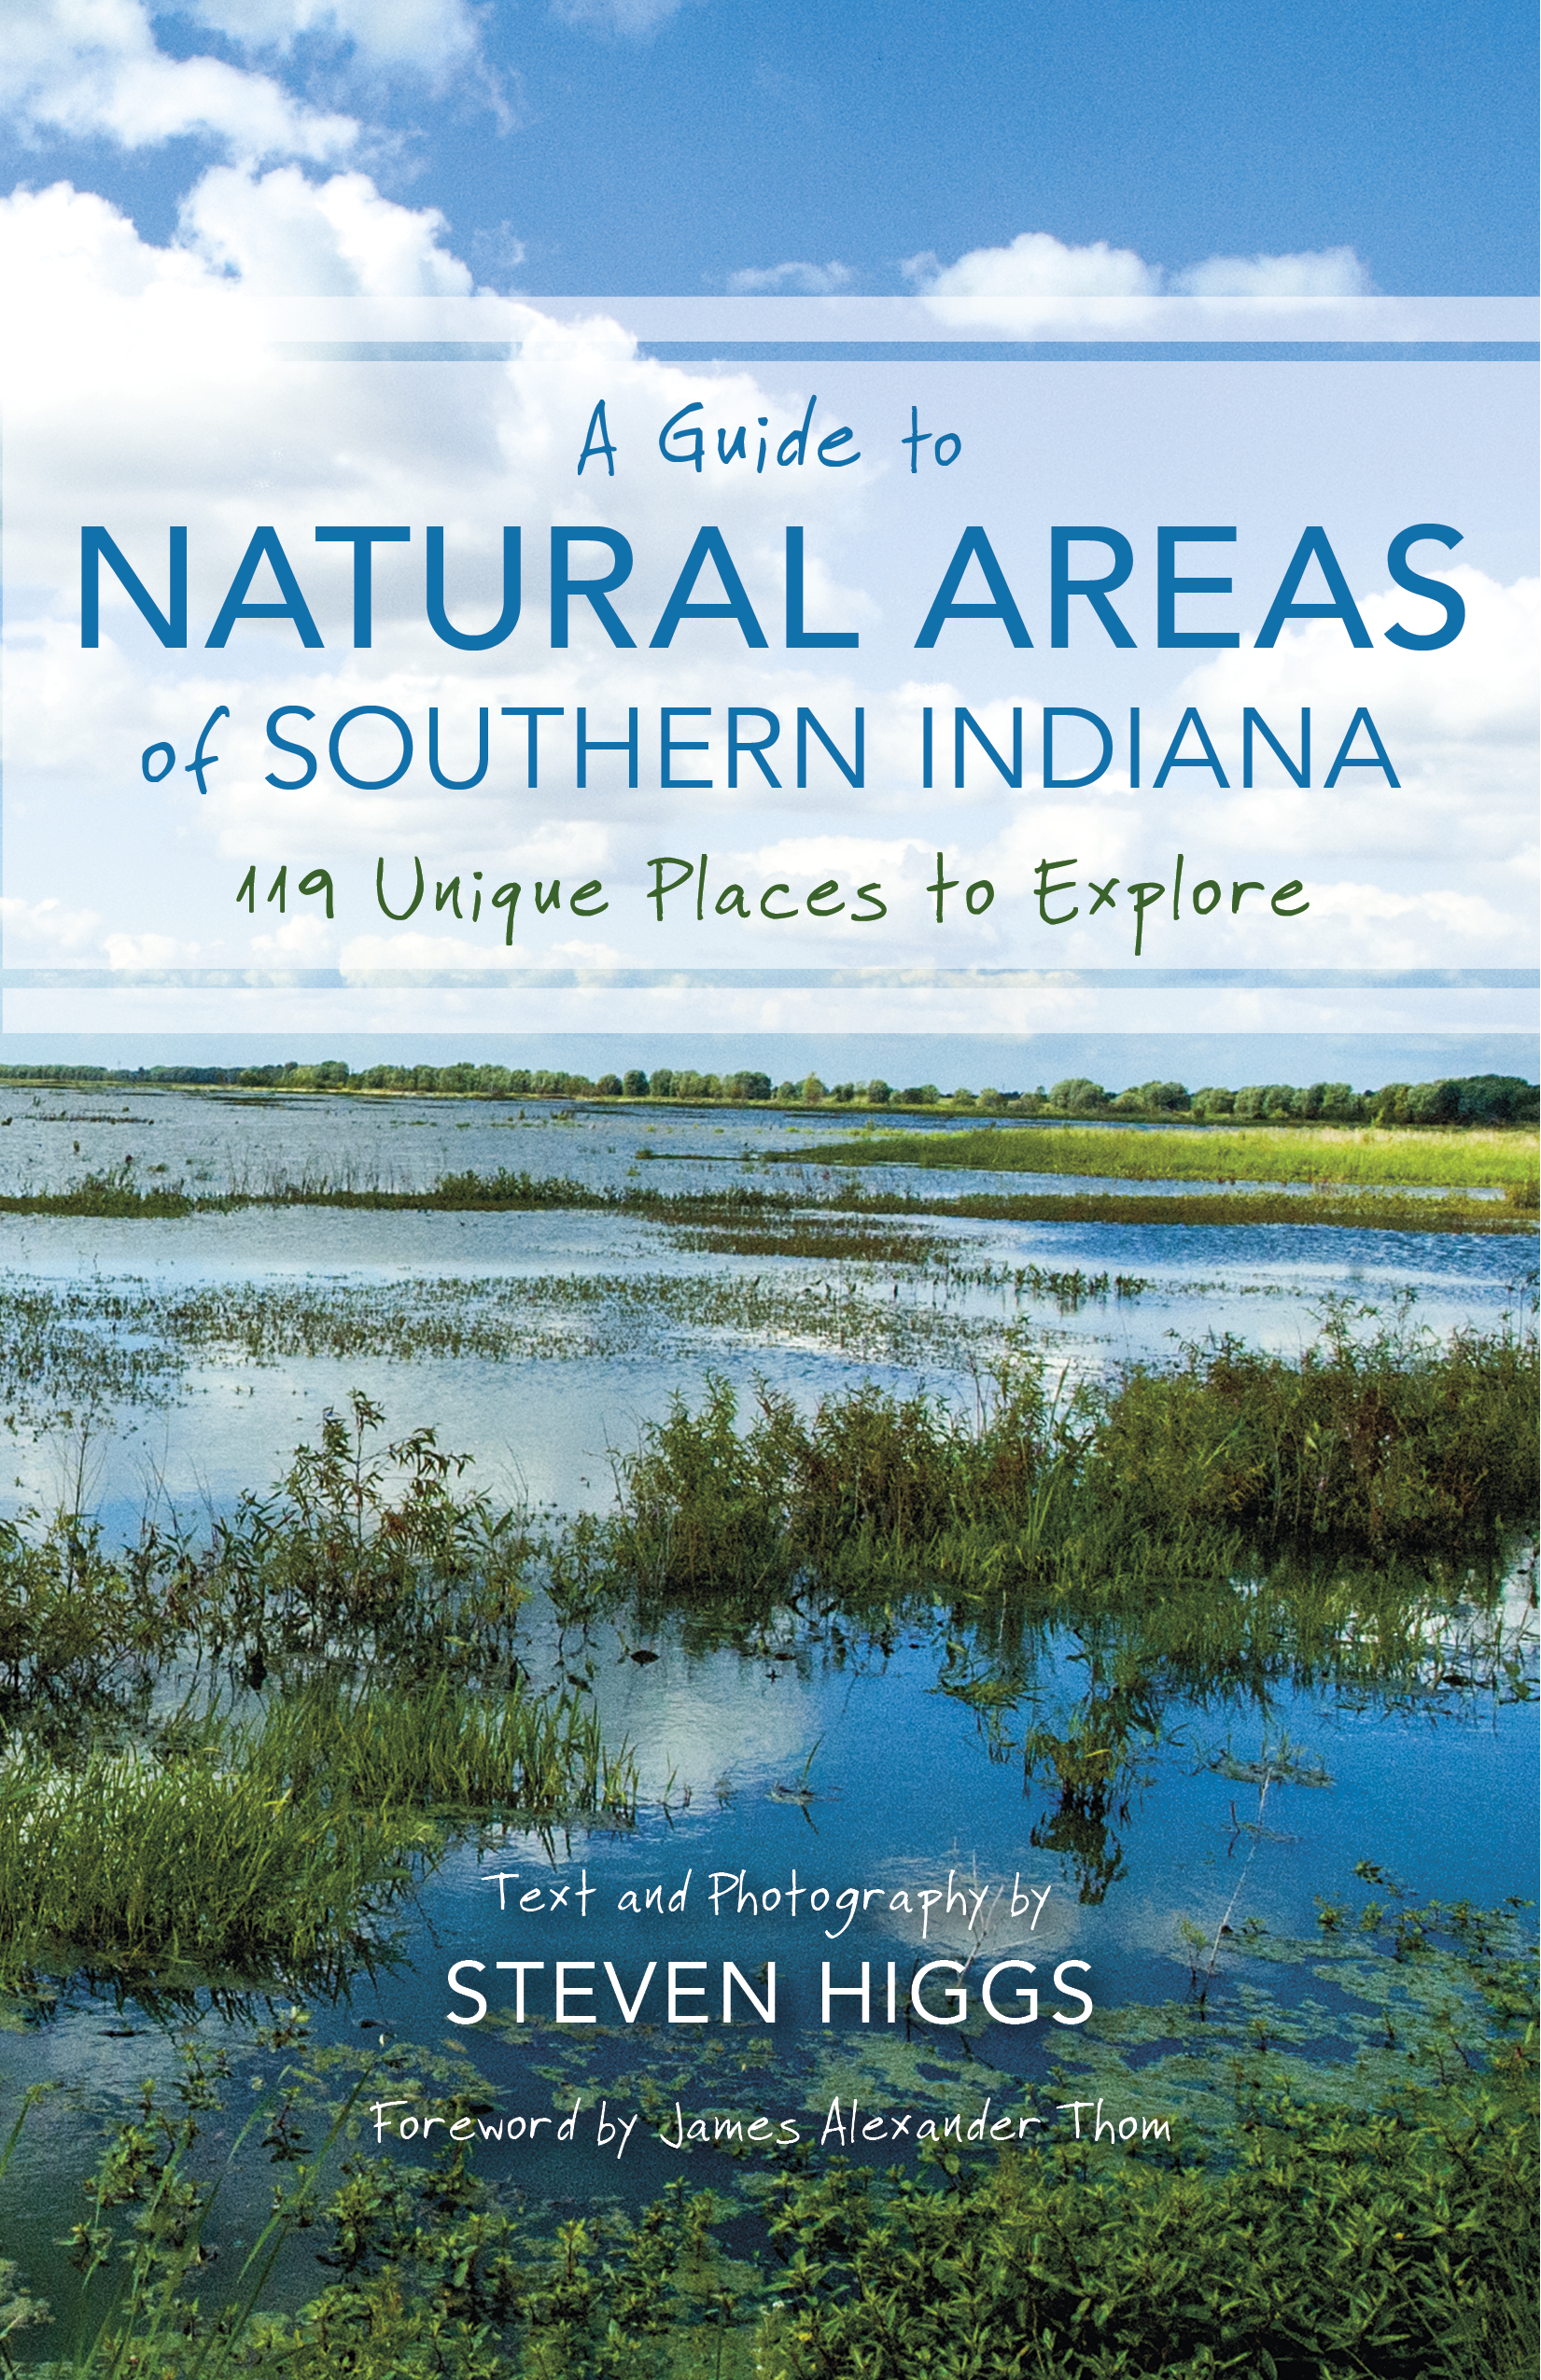 Guide to Natural Areas of Southern Indiana